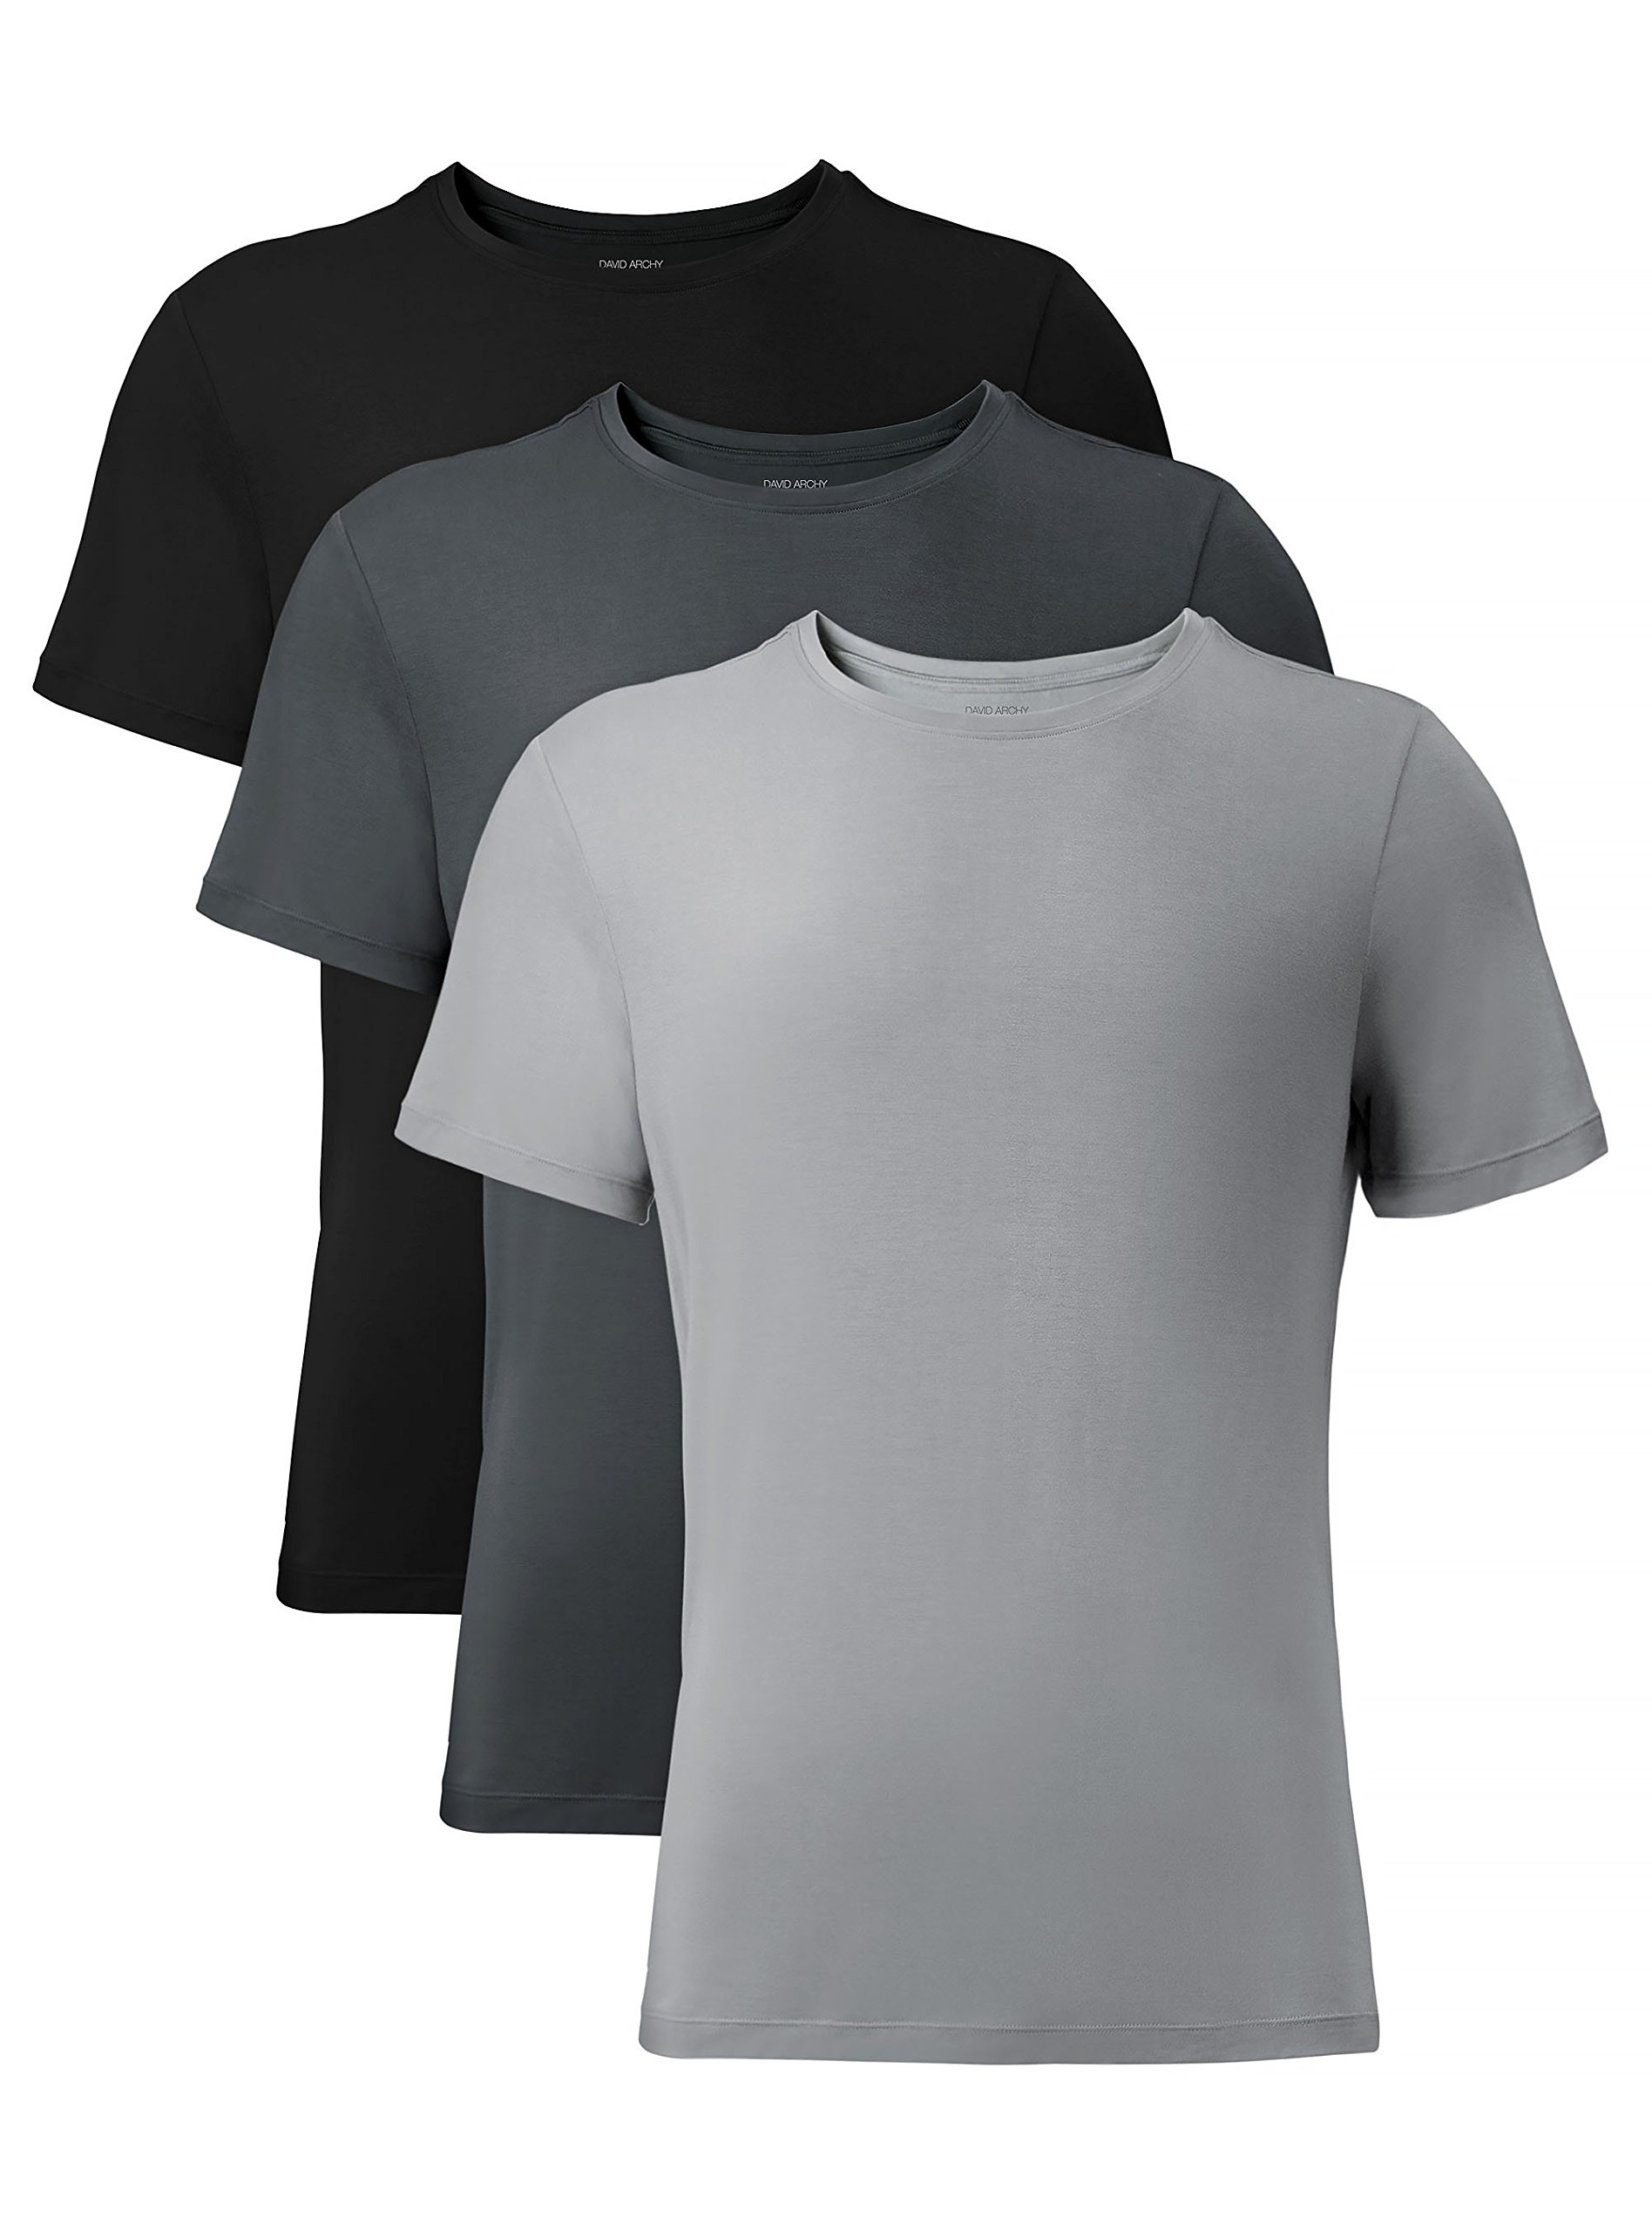 David Archy Men's 3 Pack Bamboo Rayon Undershirts Crew Neck Slim Fit Tees Short Sleeve T-Shirts(M,Black/Charcoal/Gray)